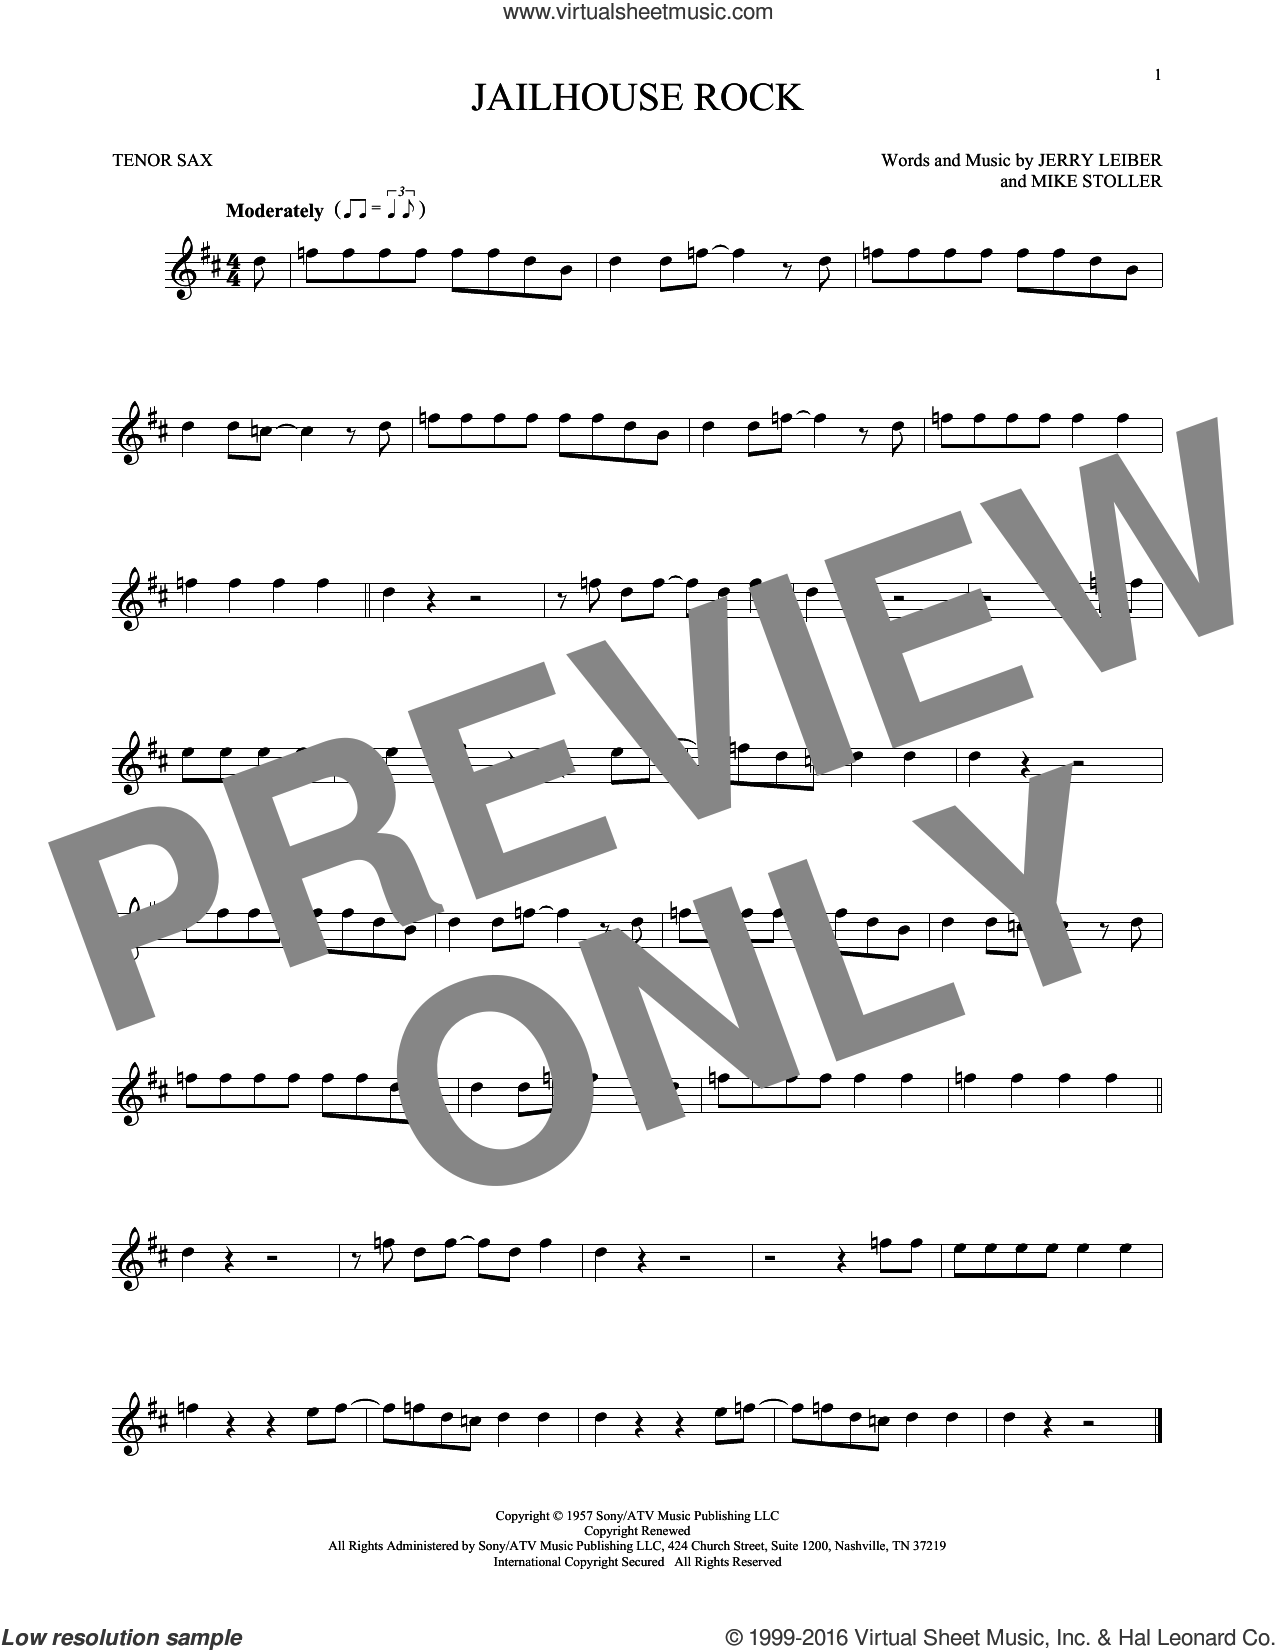 Jailhouse Rock sheet music for tenor saxophone solo by Mike Stoller